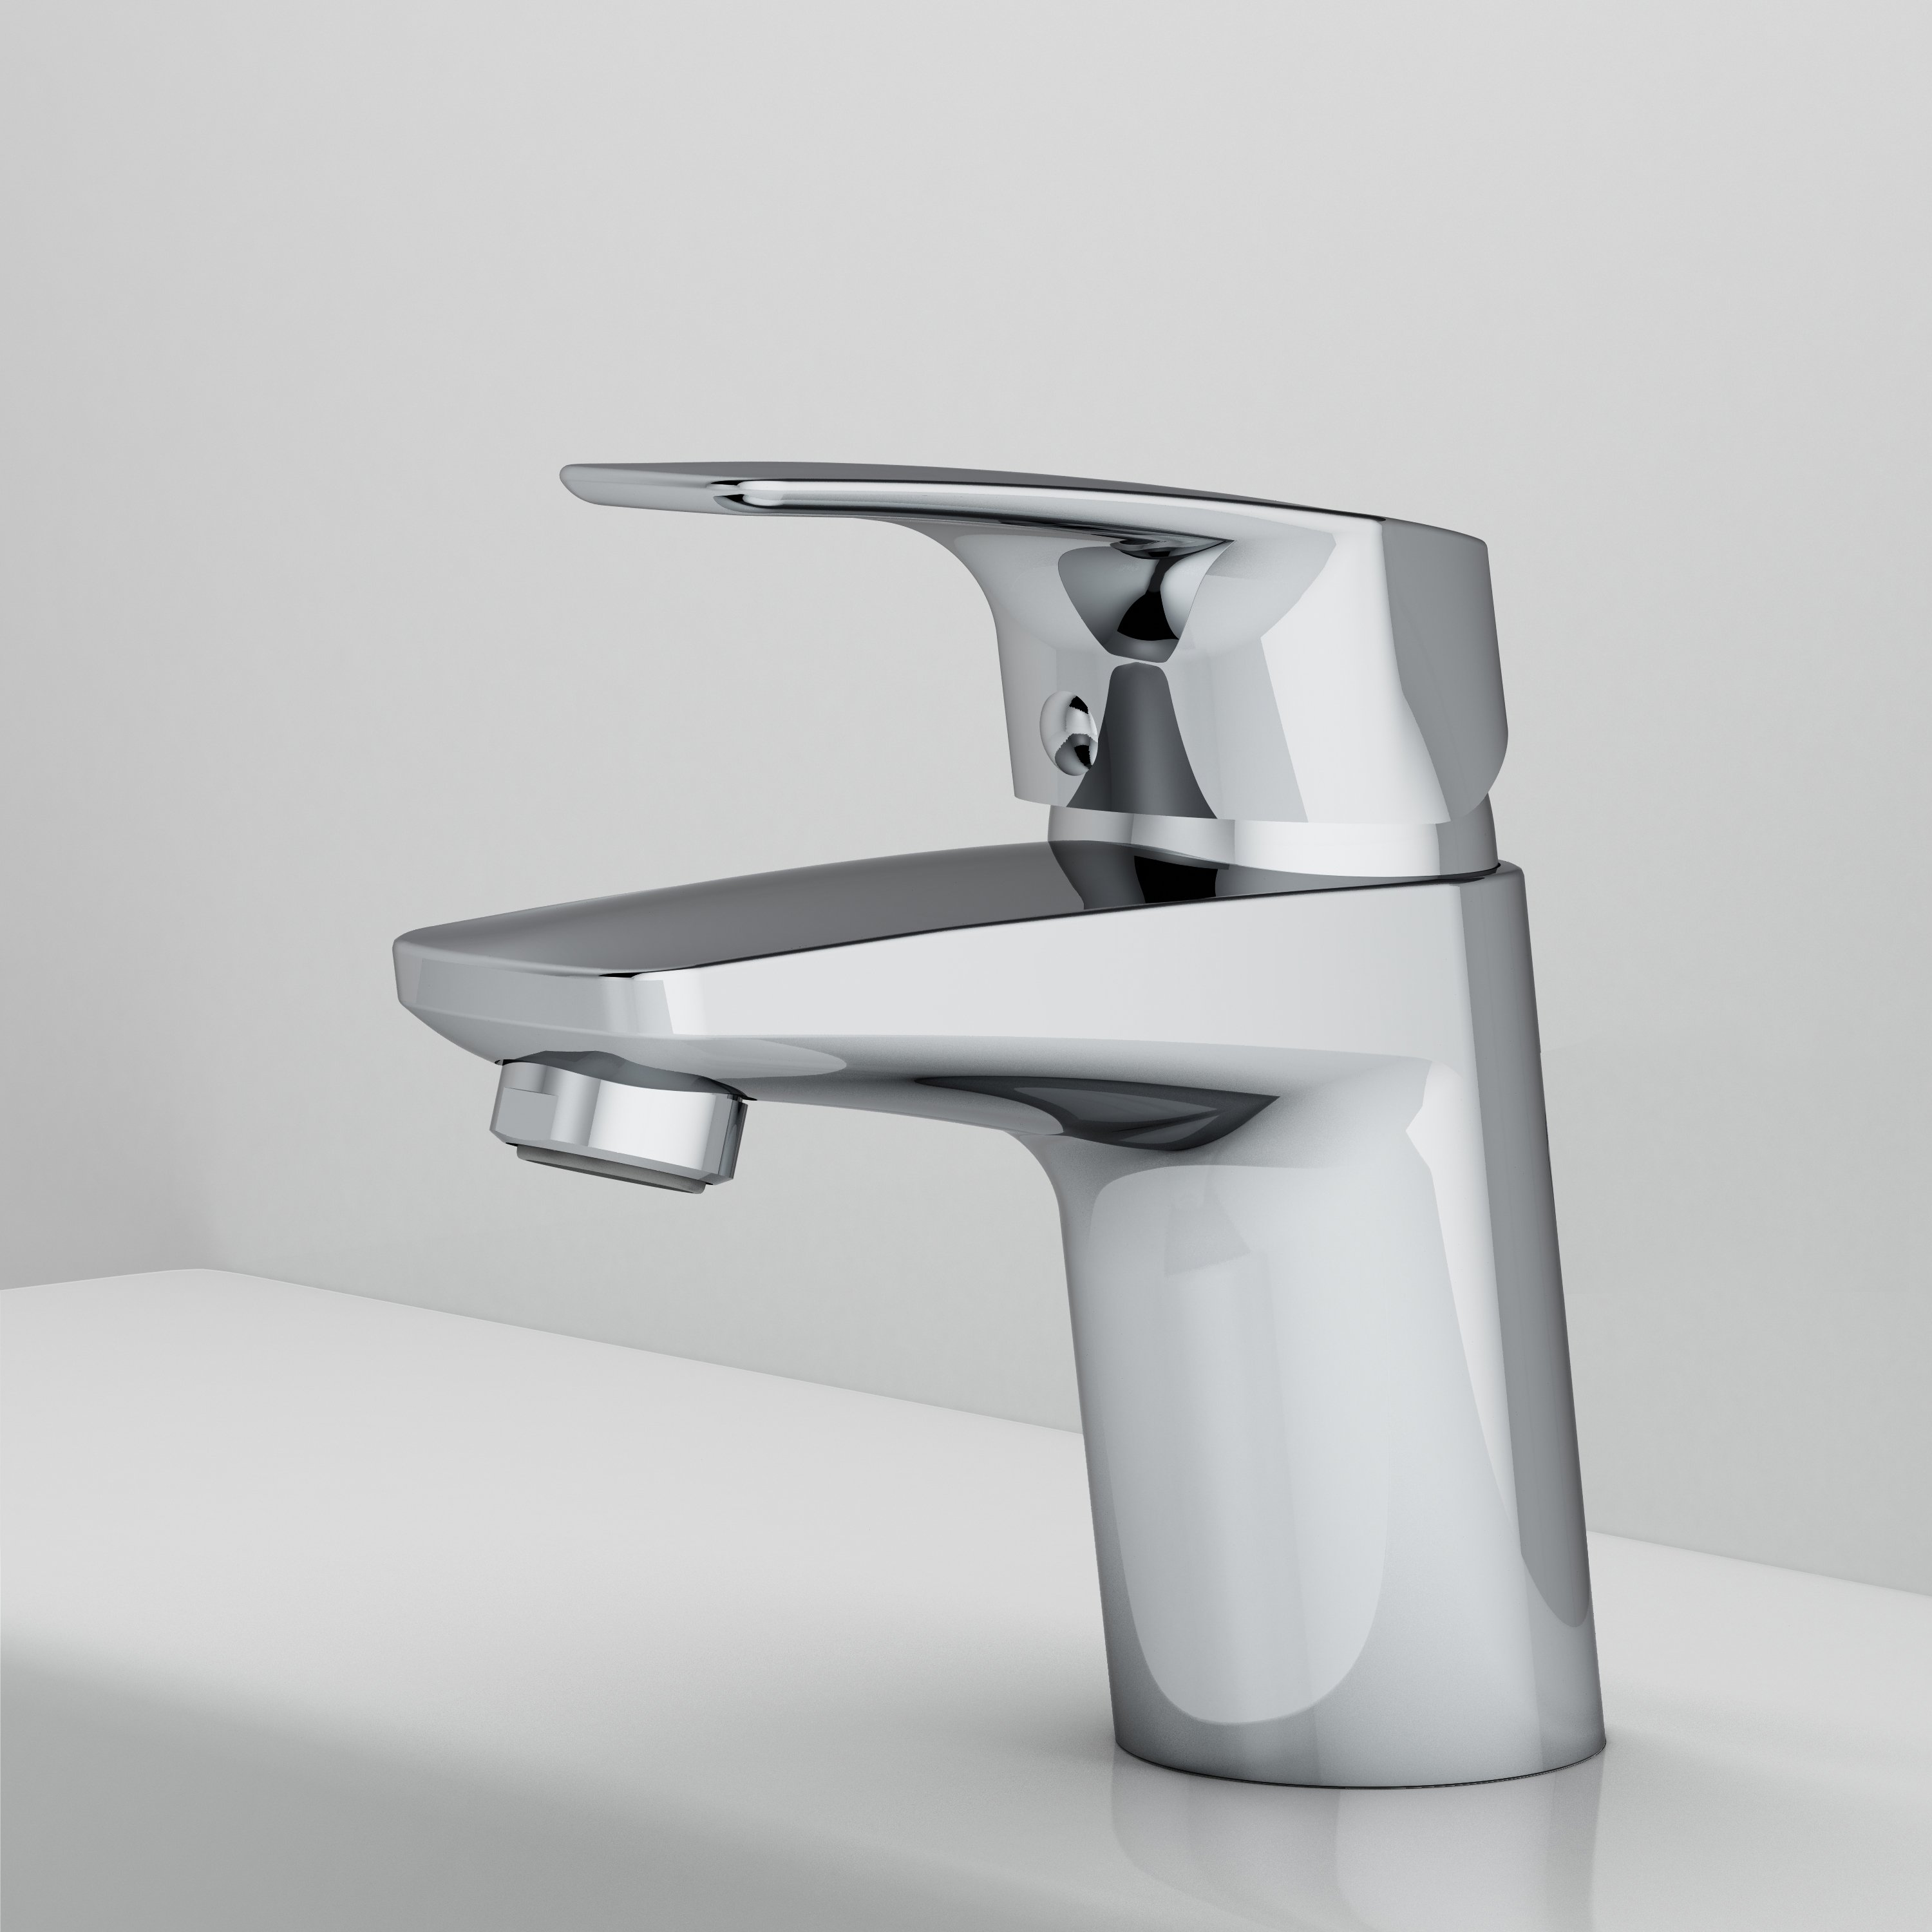 F9002100 Single-lever basin mixer